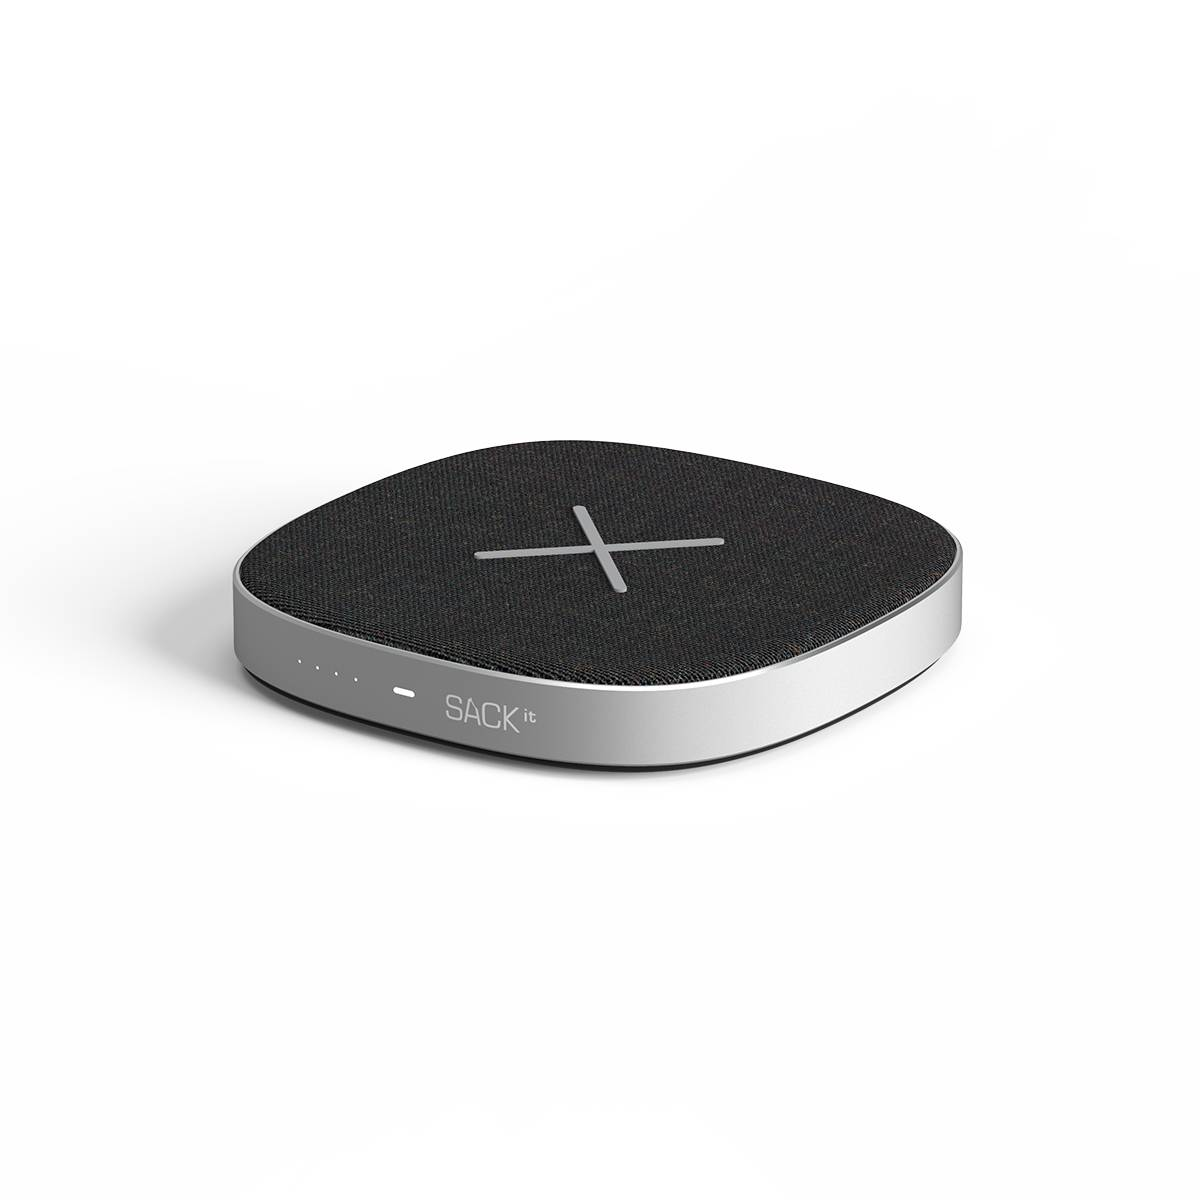 SACKit-dk CHARGEit